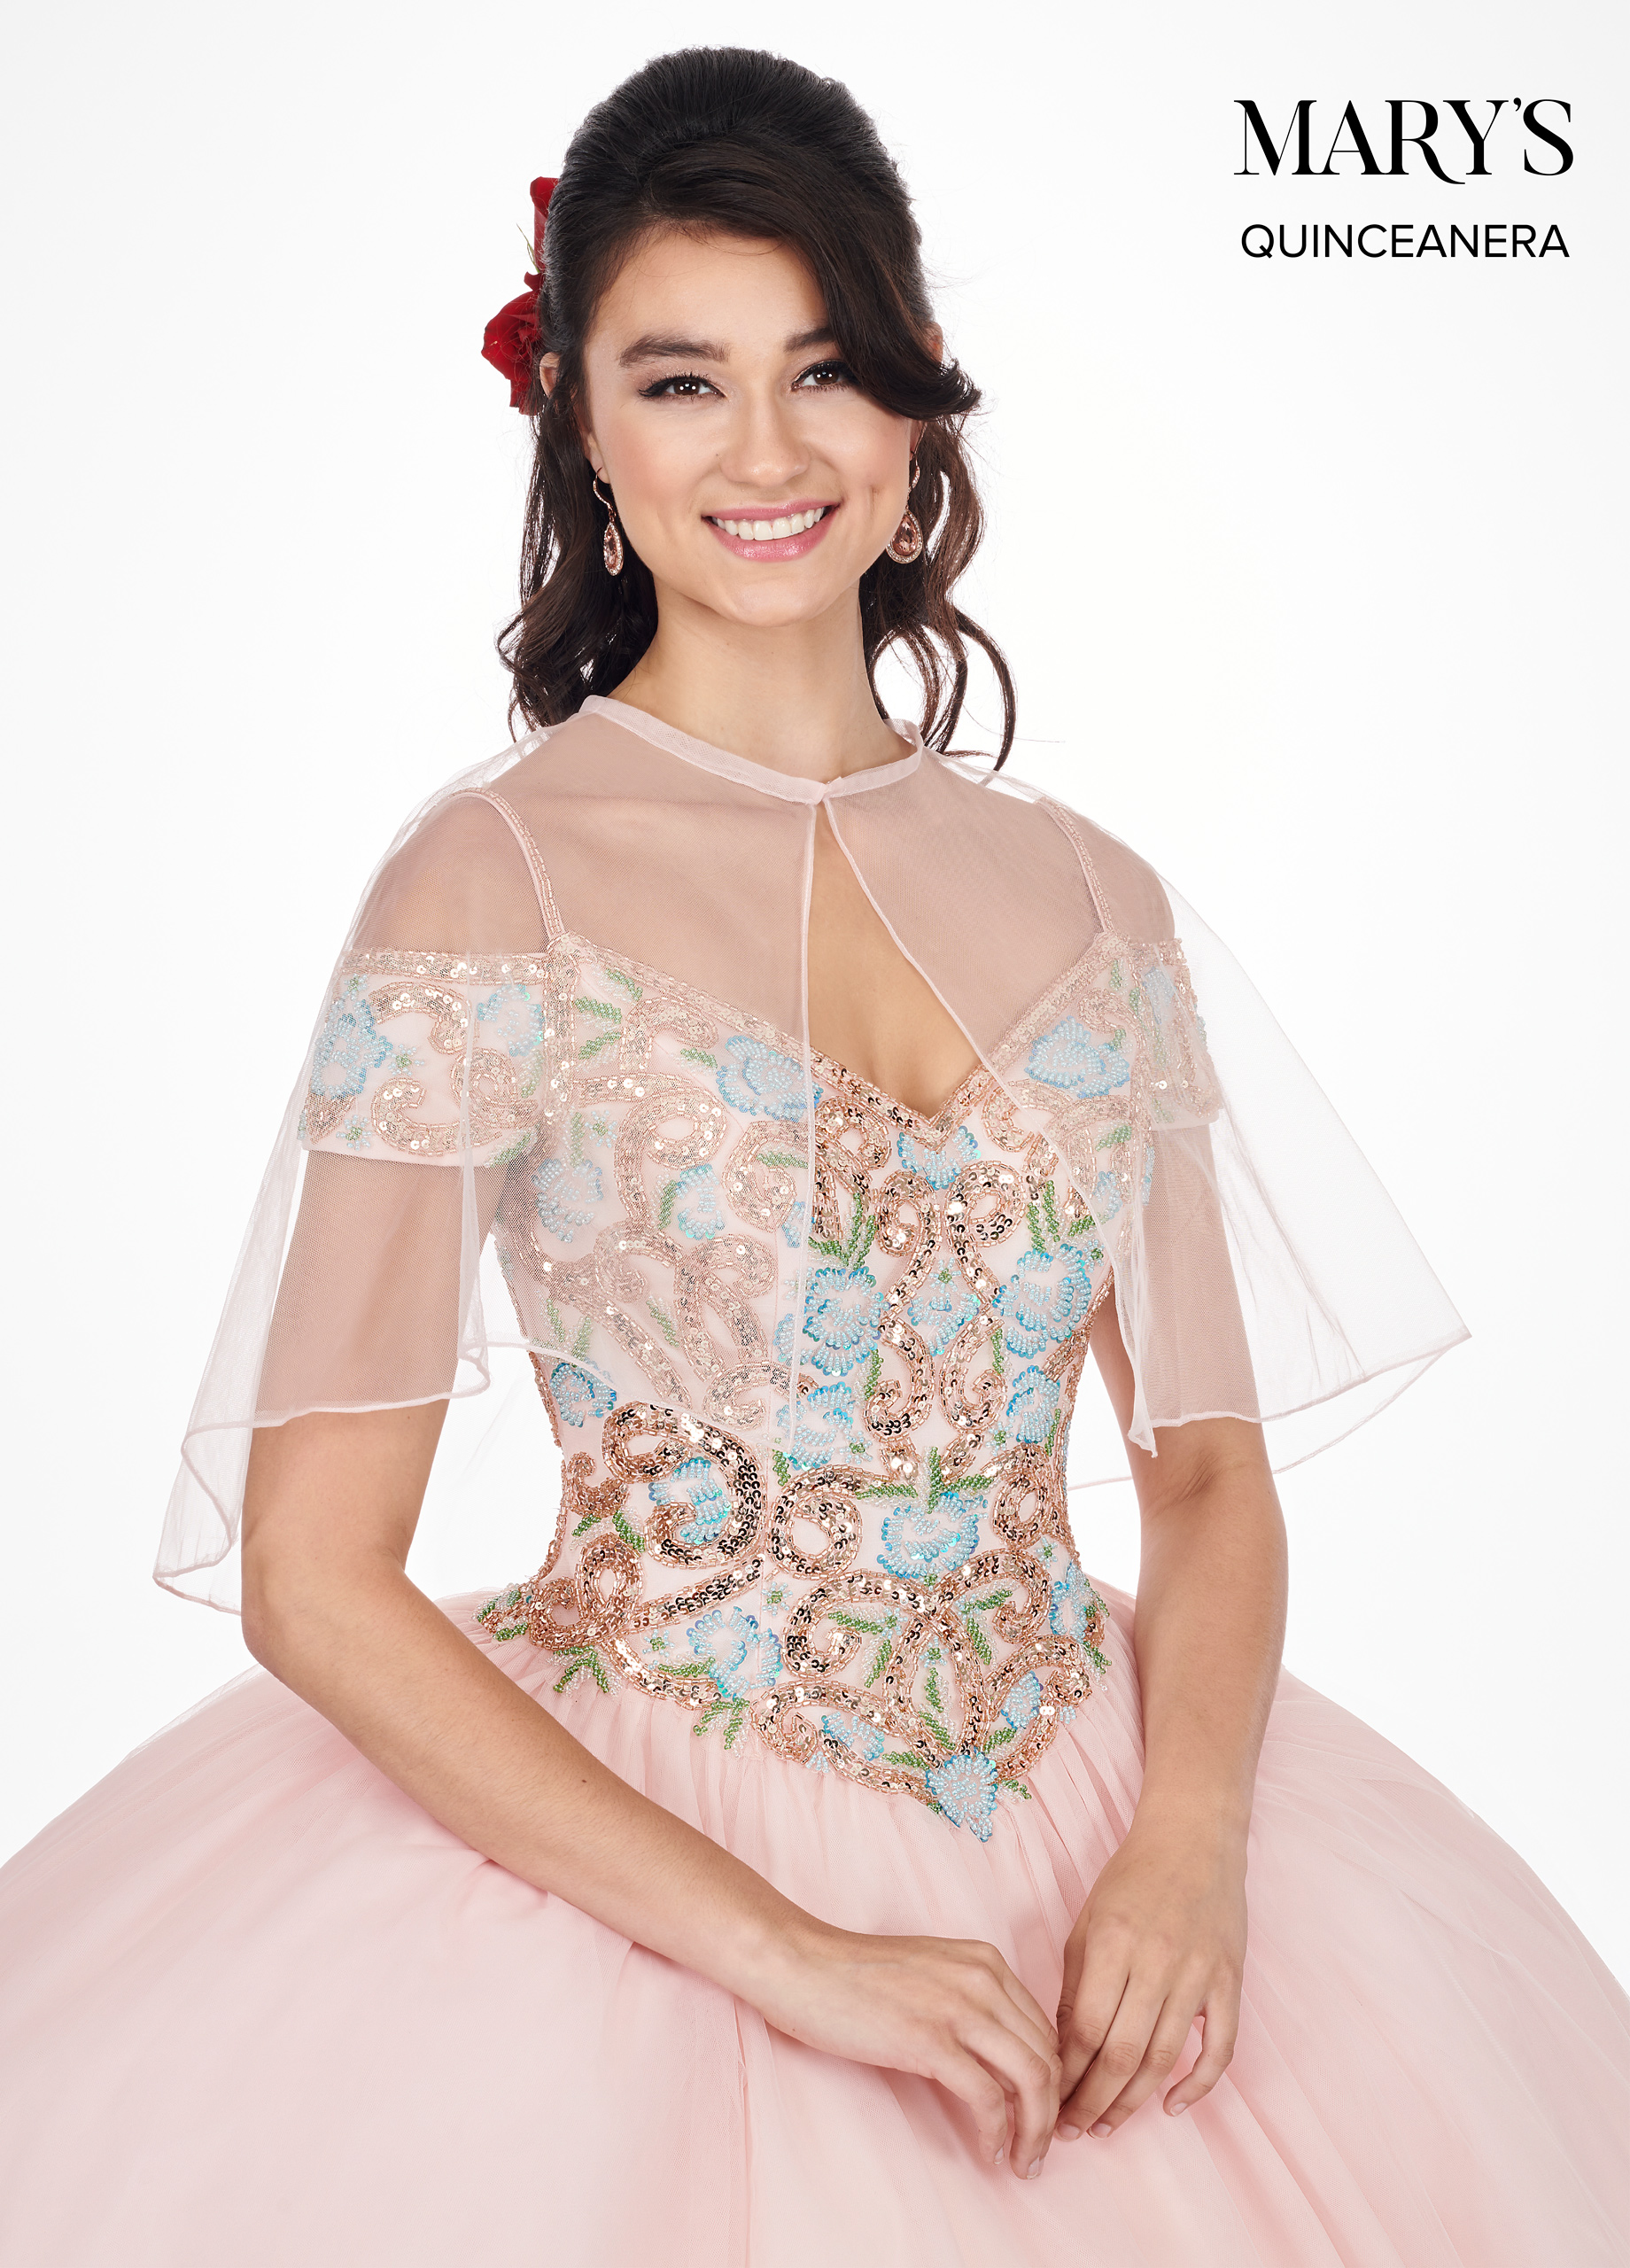 Marys Quinceanera Dresses | Mary's Quinceanera | Style - MQ1036